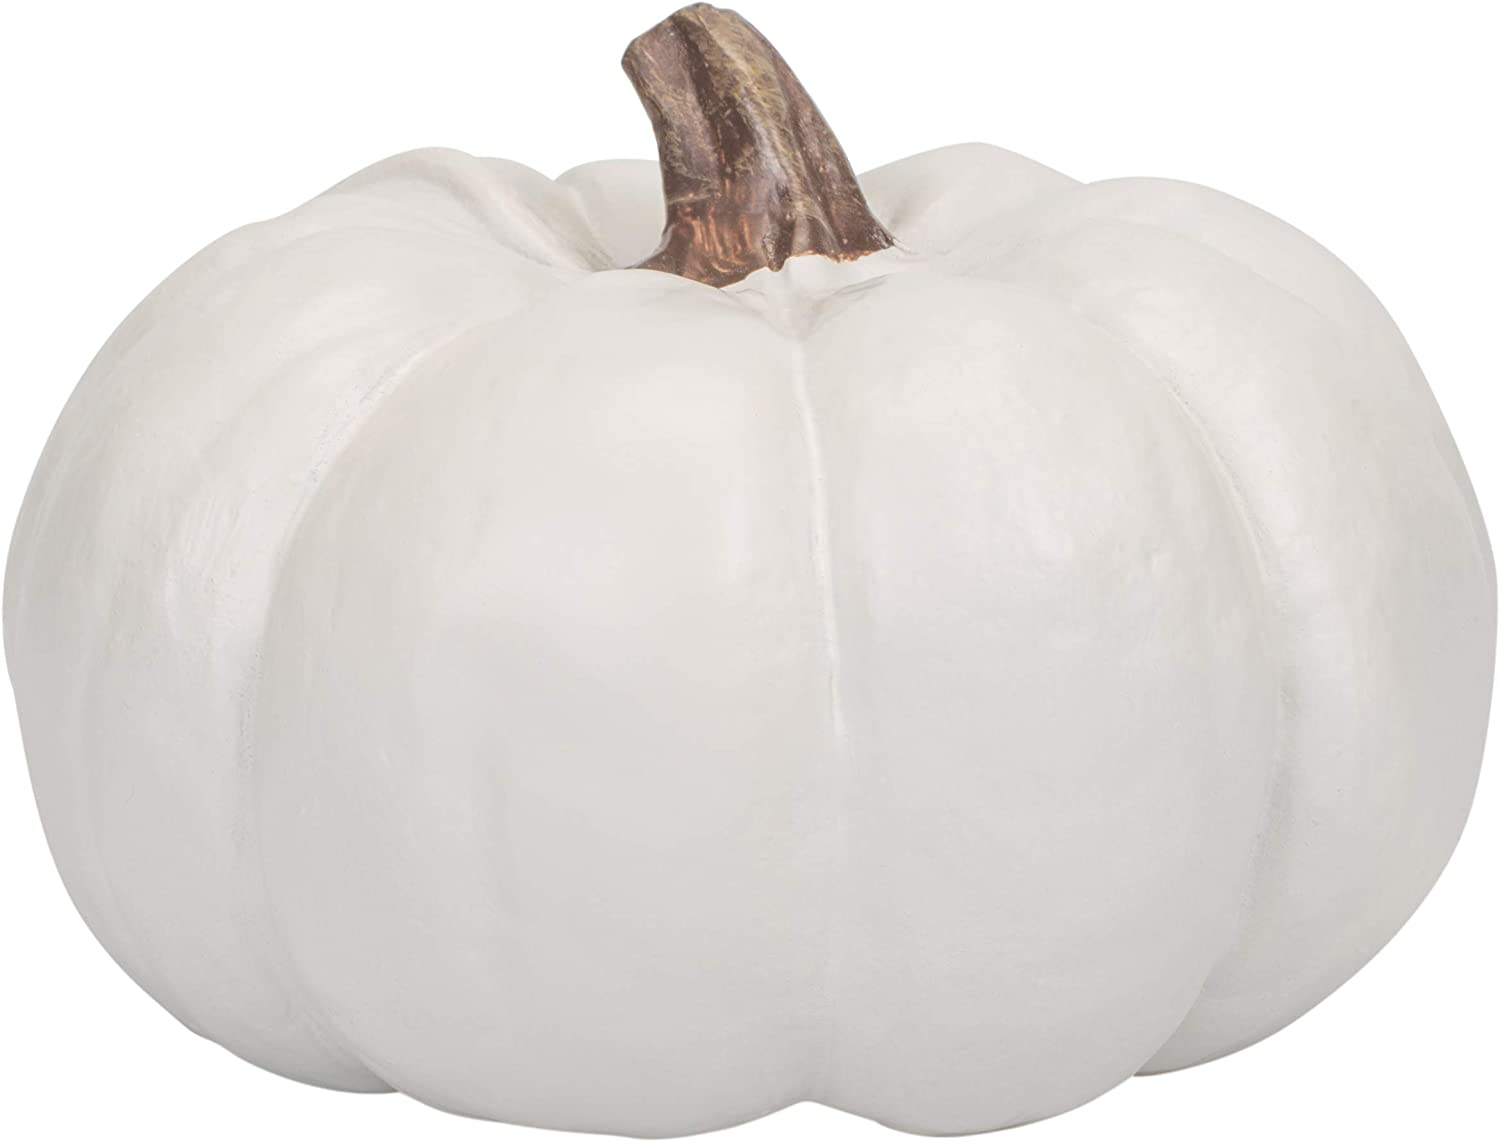 Elanze Designs Classic White 6 inch Resin Harvest Decorative Pumpkin